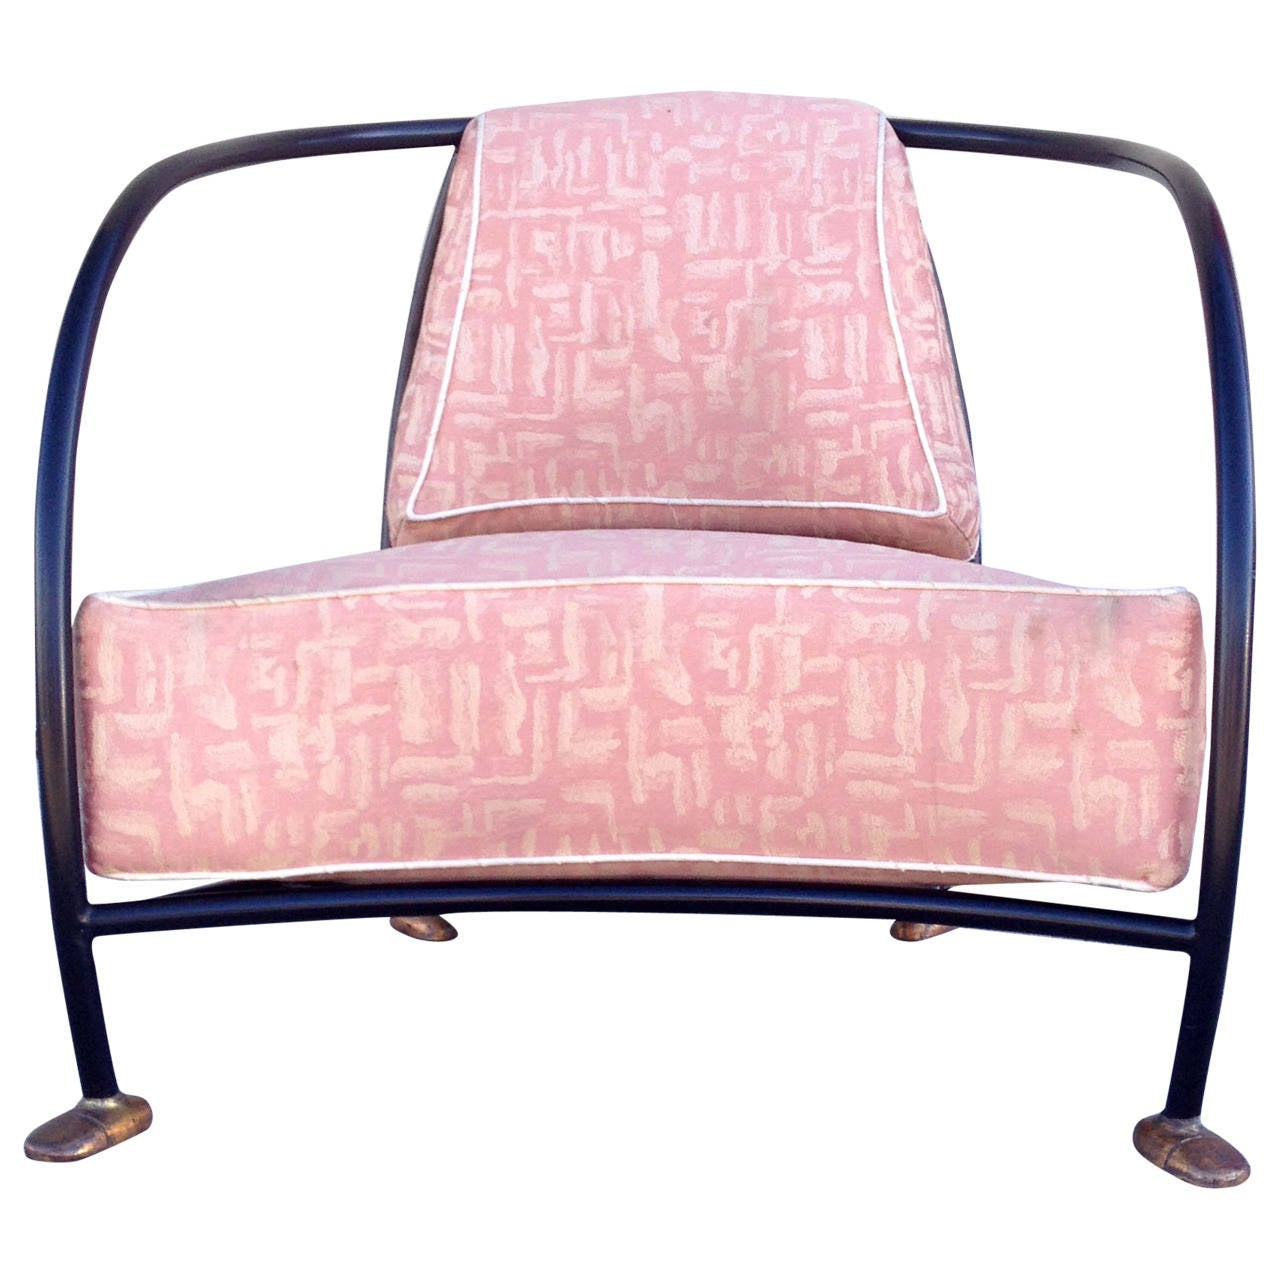 Anthropomorphic 1980s lounge chair by phil miller at 1stdibs for 1980s chair